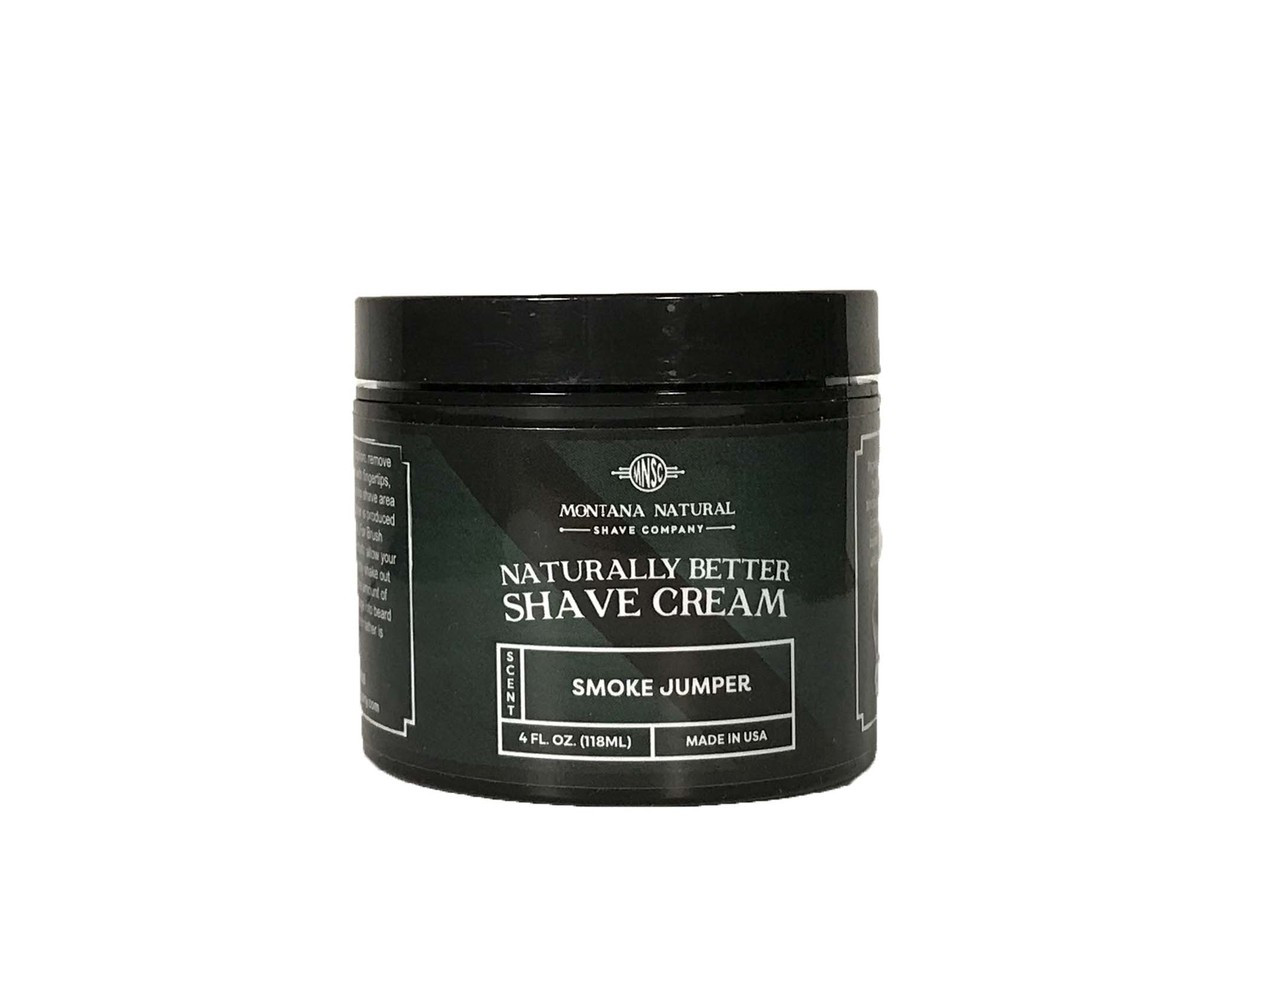 Montana Natural Shave Company   Smoke Jumper (Pine Tar) Shave Cream for a Naturally Better Shave Experience!